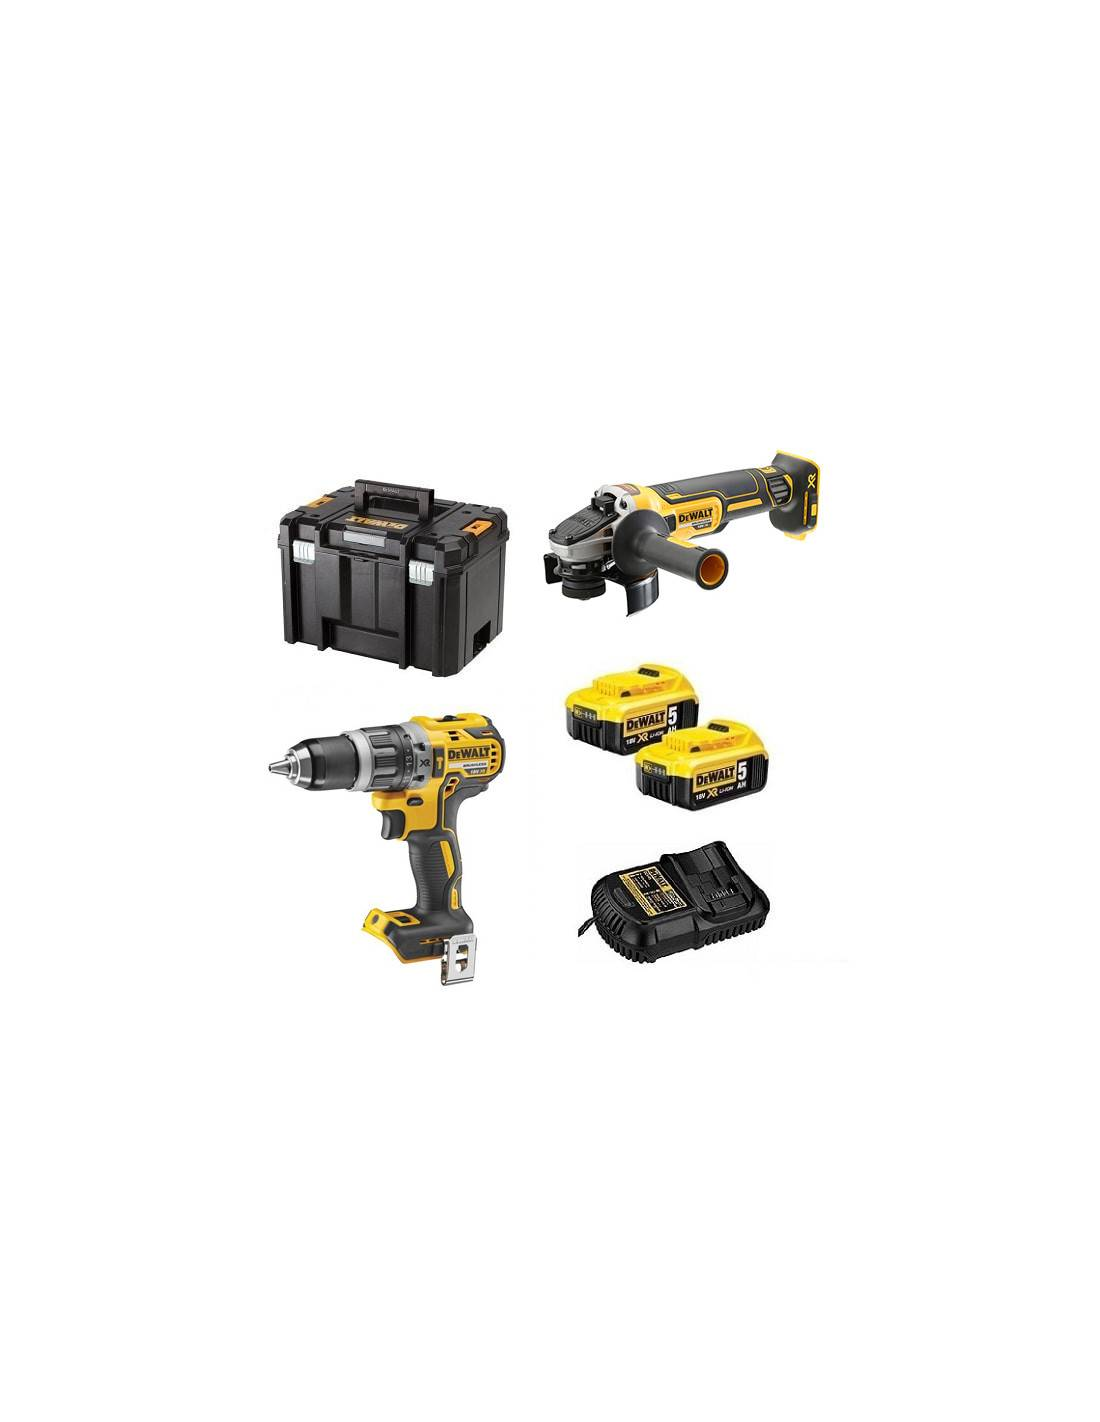 Pack DEWALT Perceuse visseuse à percussion DCD796 + meuleuse 125 mm DG405 (2x5AH) en coffret T-STAK DCK2080P2T